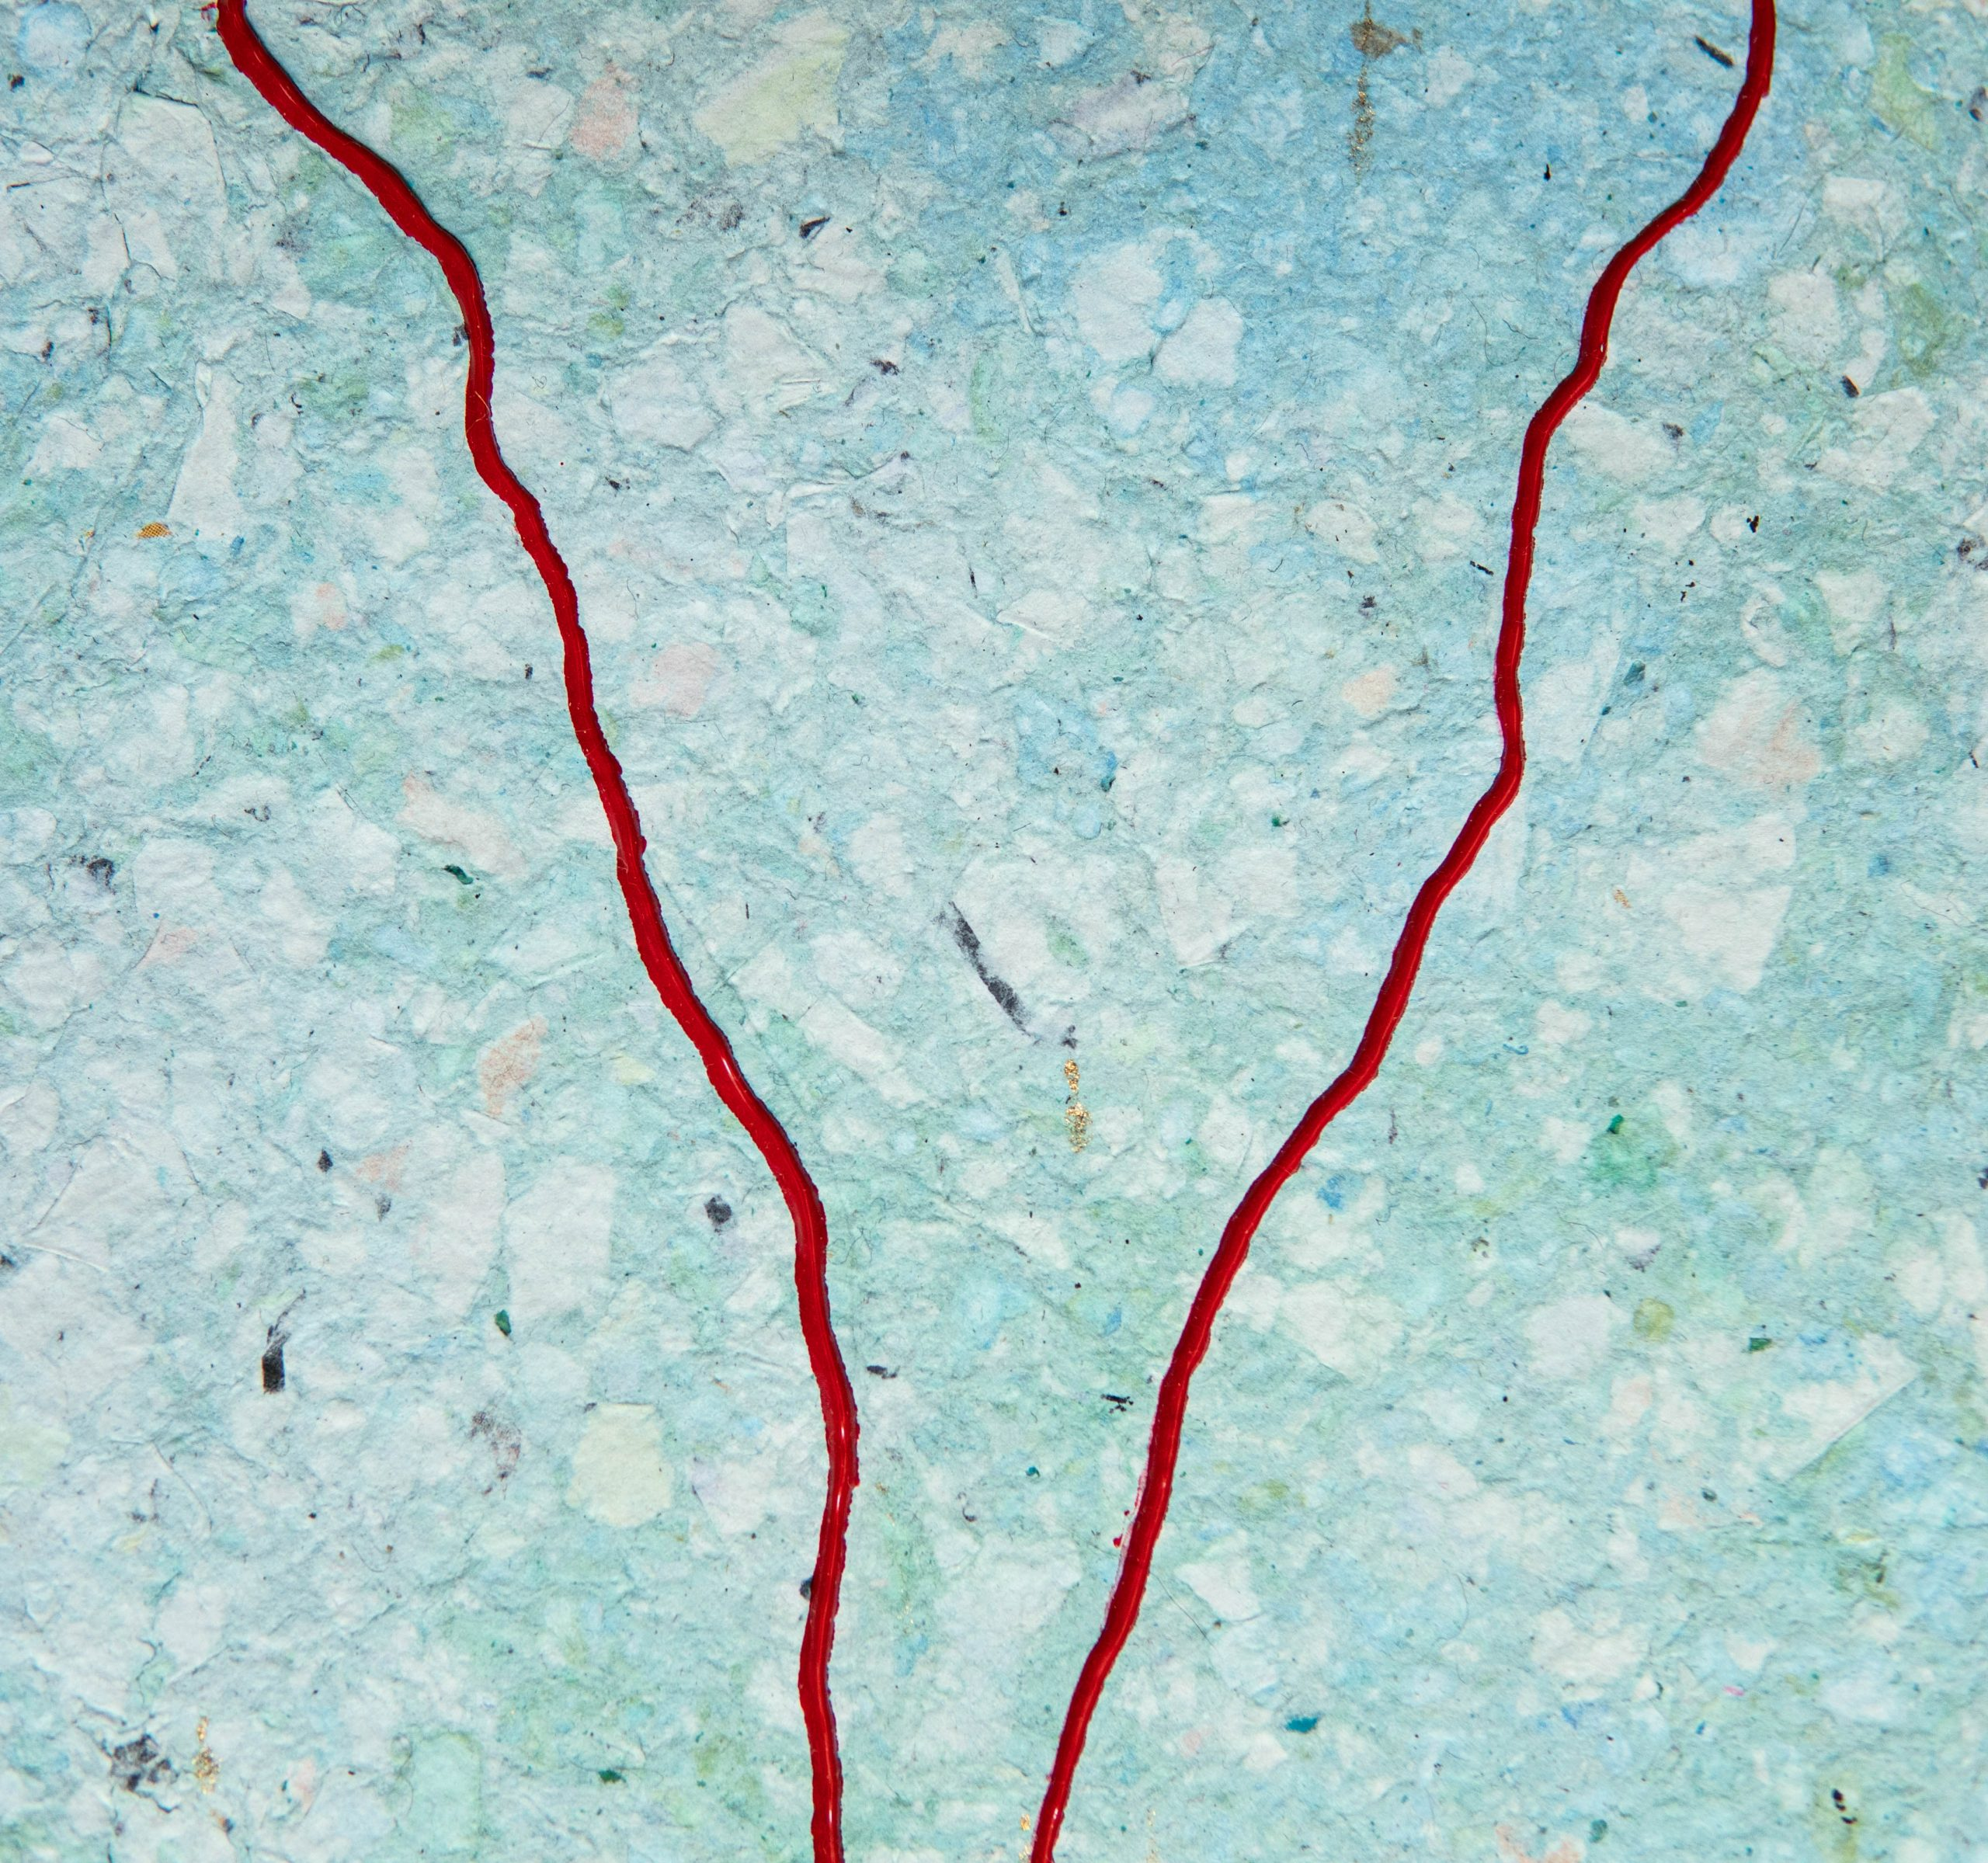 Bleeding Piece of Earth (detail), 2020, Handmade recycled paper, acrylic paint, and ink, 10″ x 16″